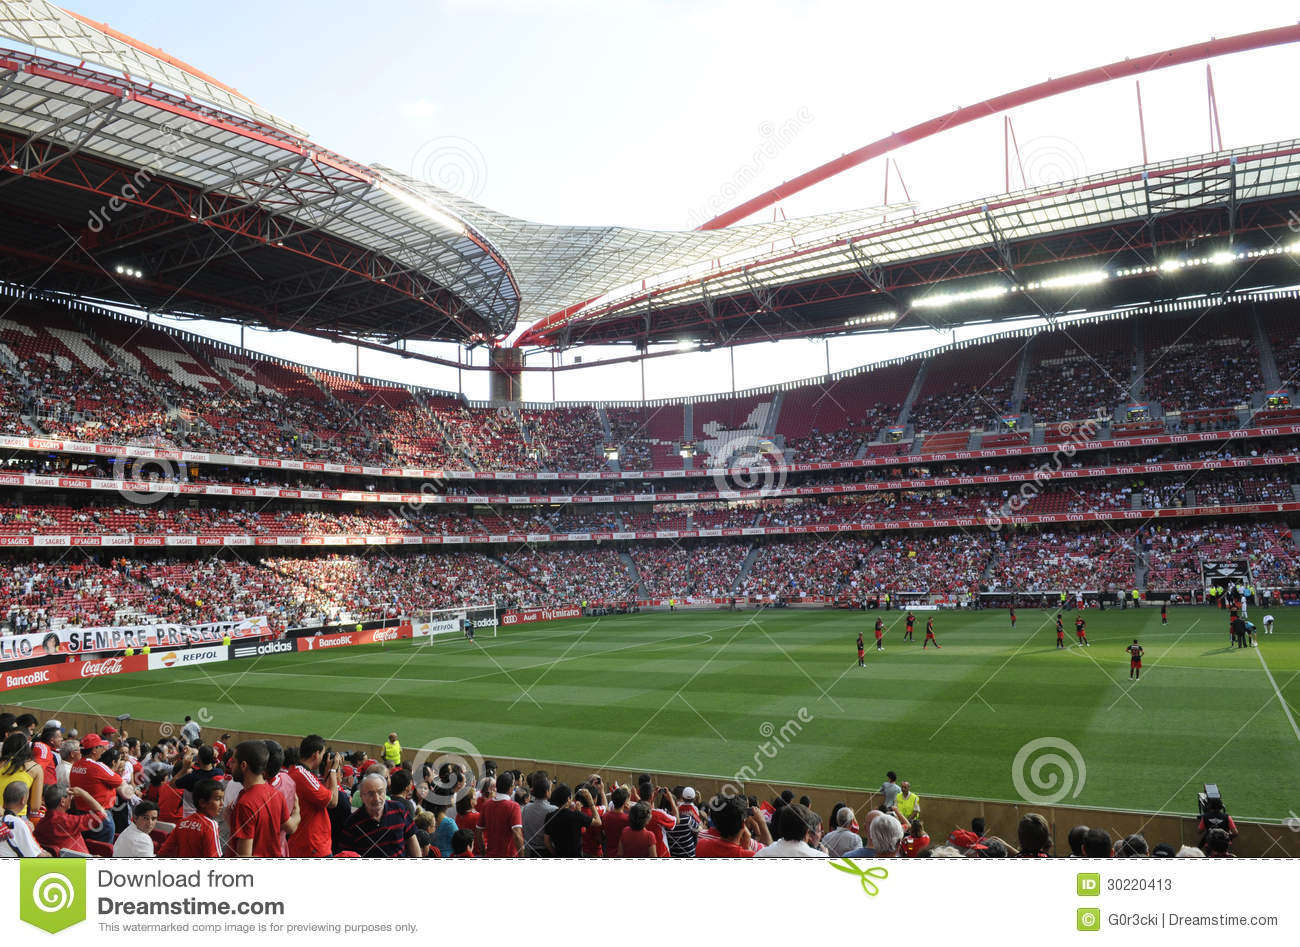 Soccer Stadium and Fans, Football Arena, Sports Crowd, Benfica Stadium, Lisbon